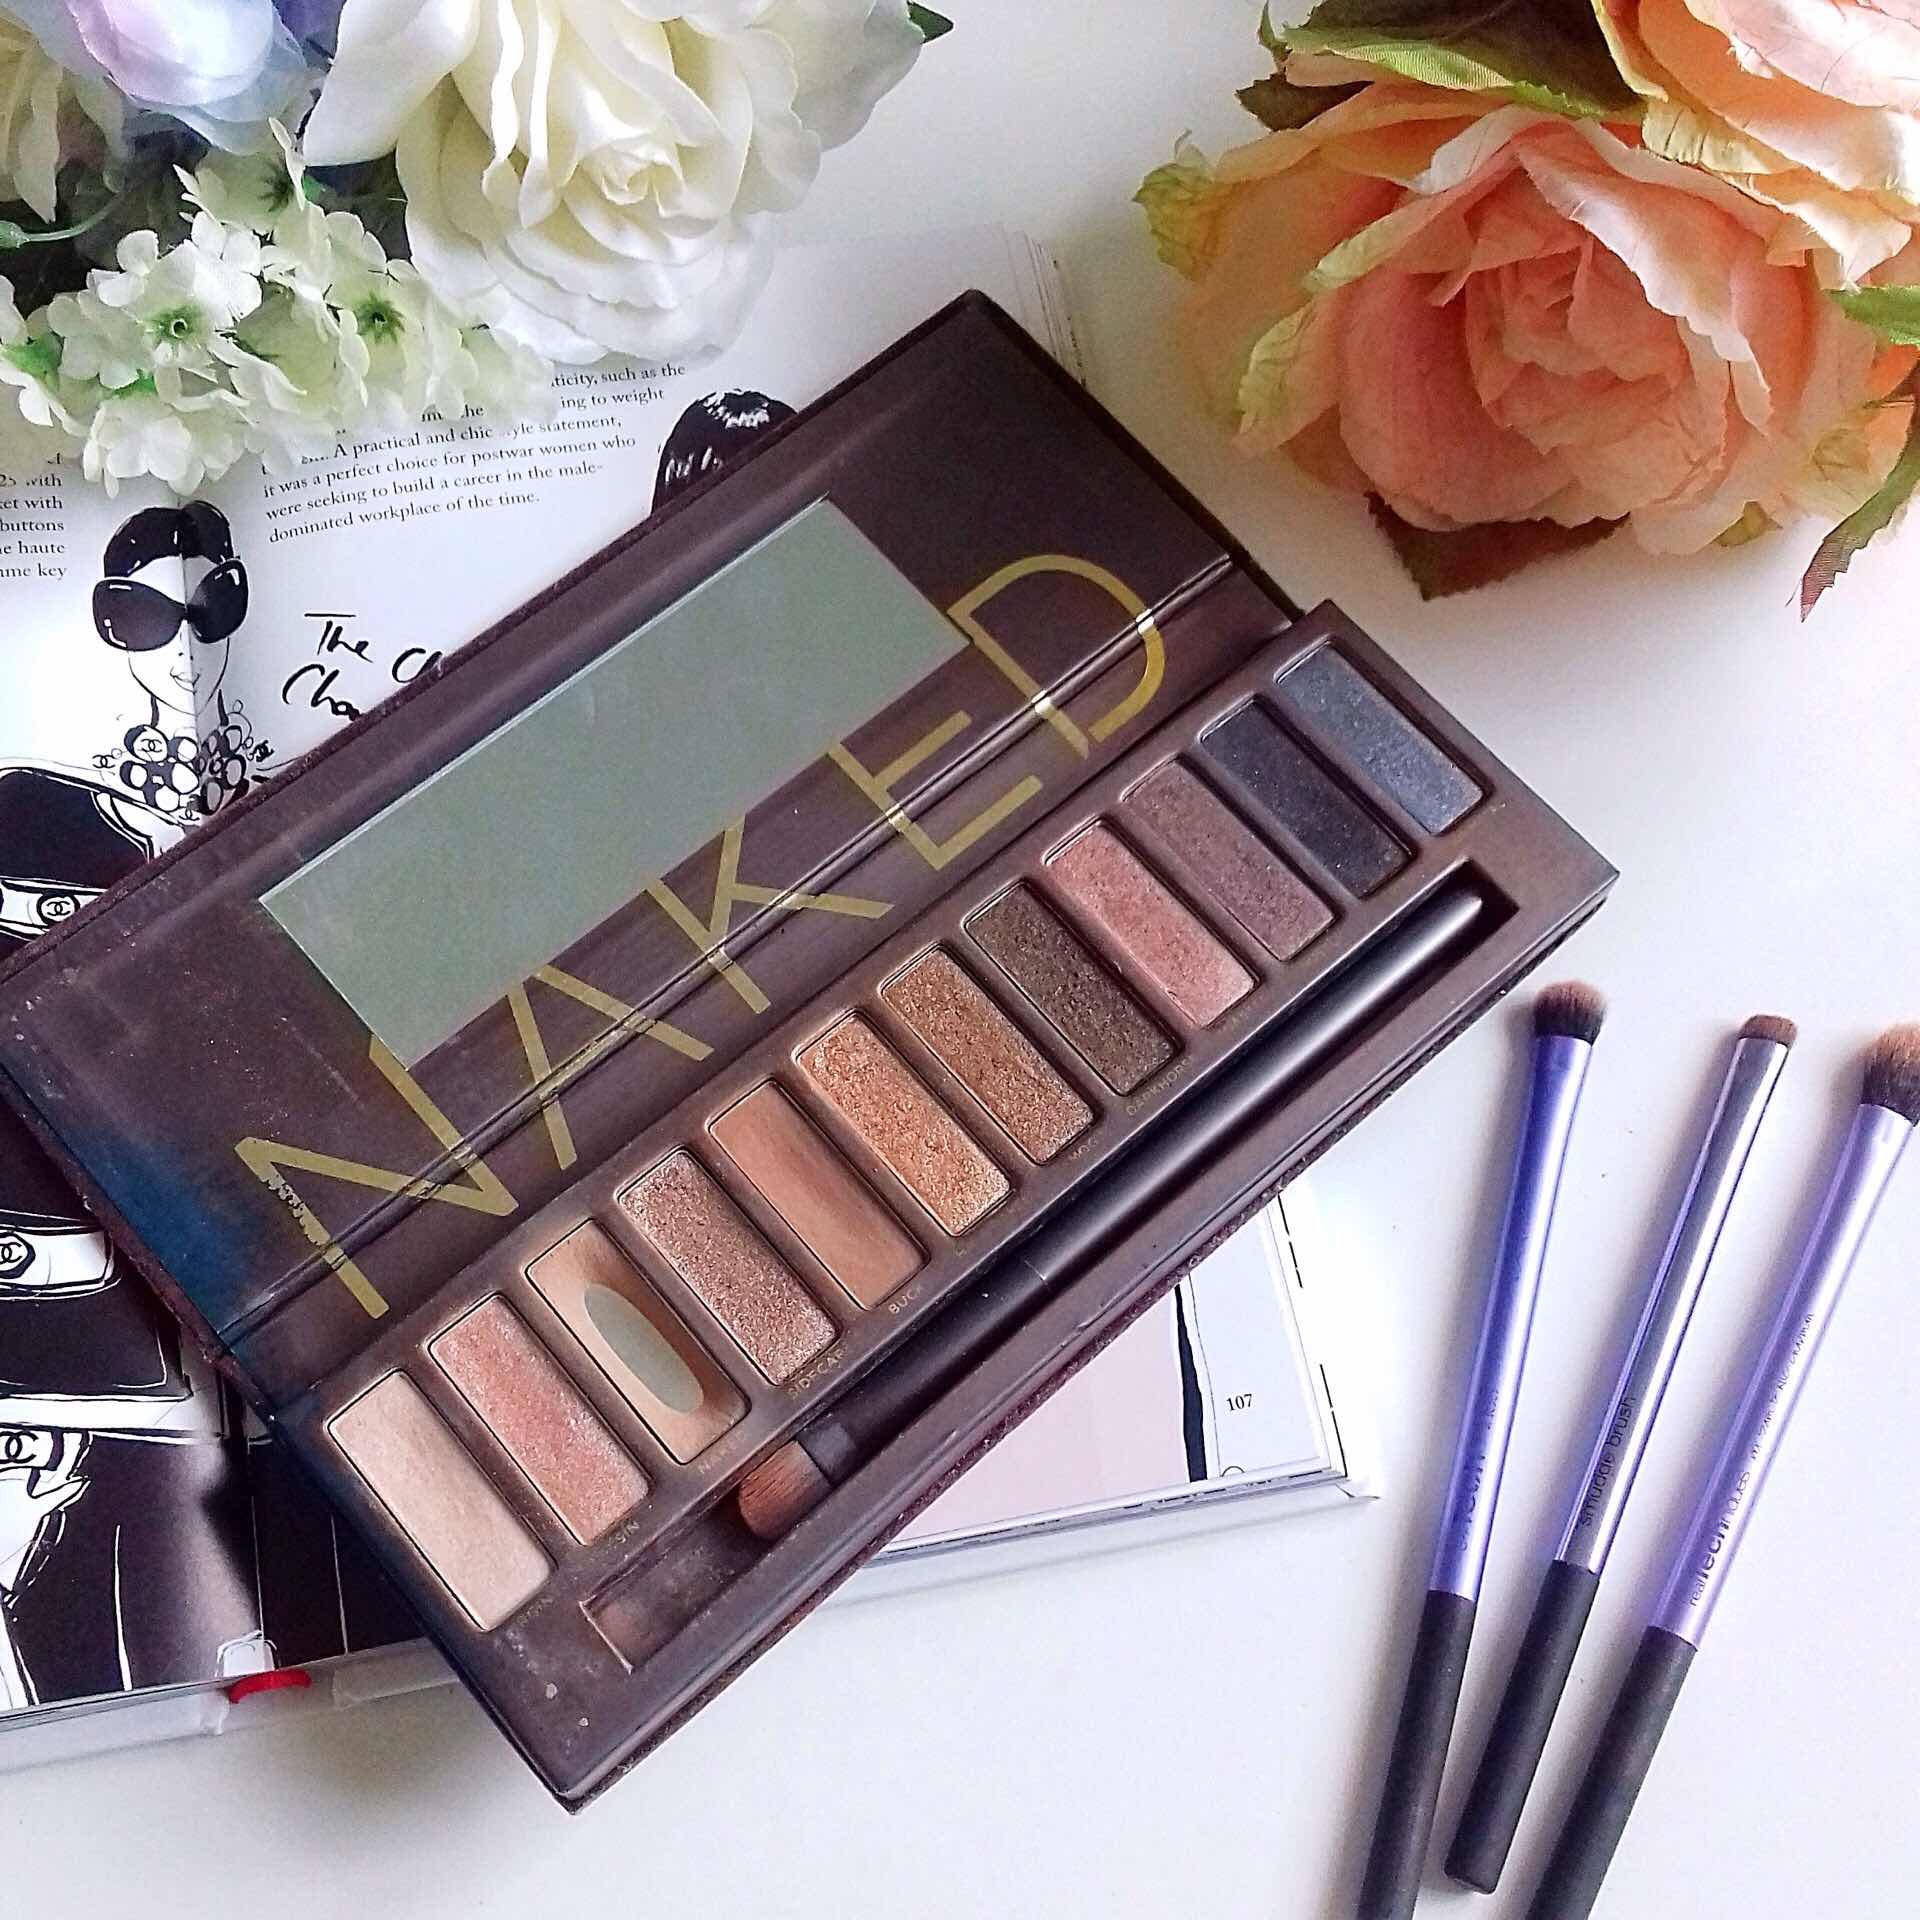 naked palette, urban decay, eyeshadow palette, makeup, eulogy,